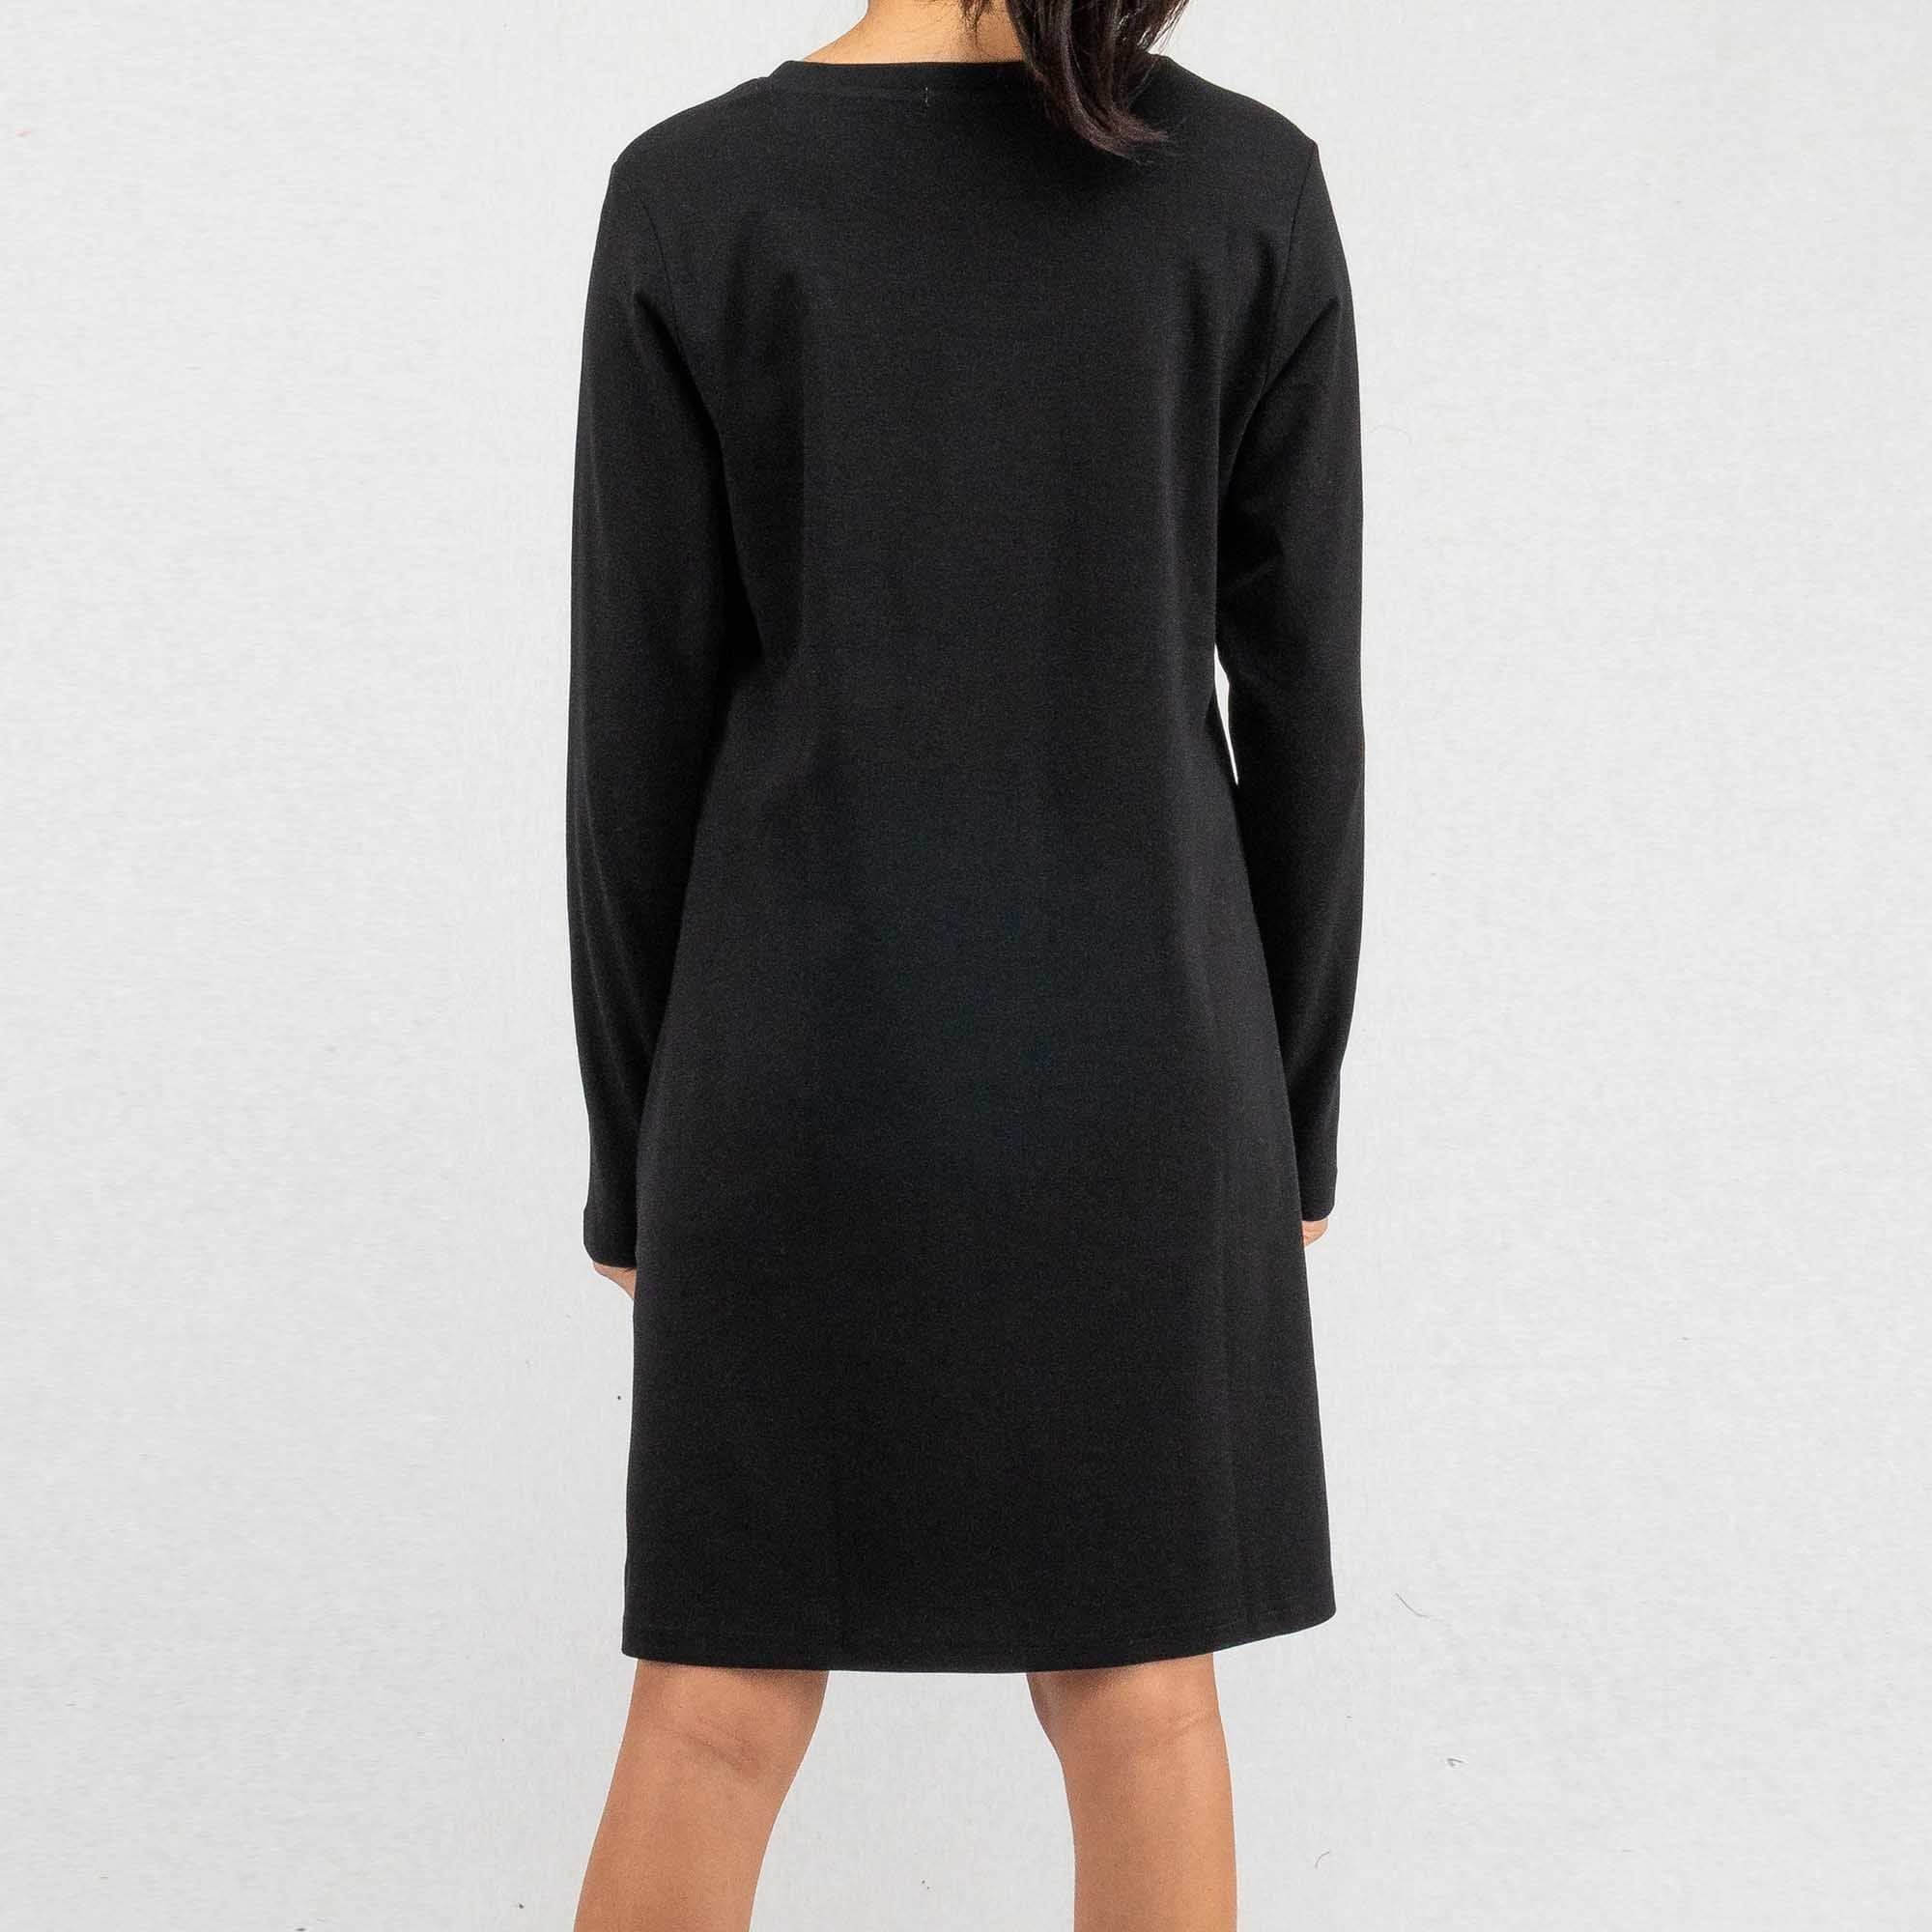 Ladies Long Sleeve Round Neck Dress - 821940